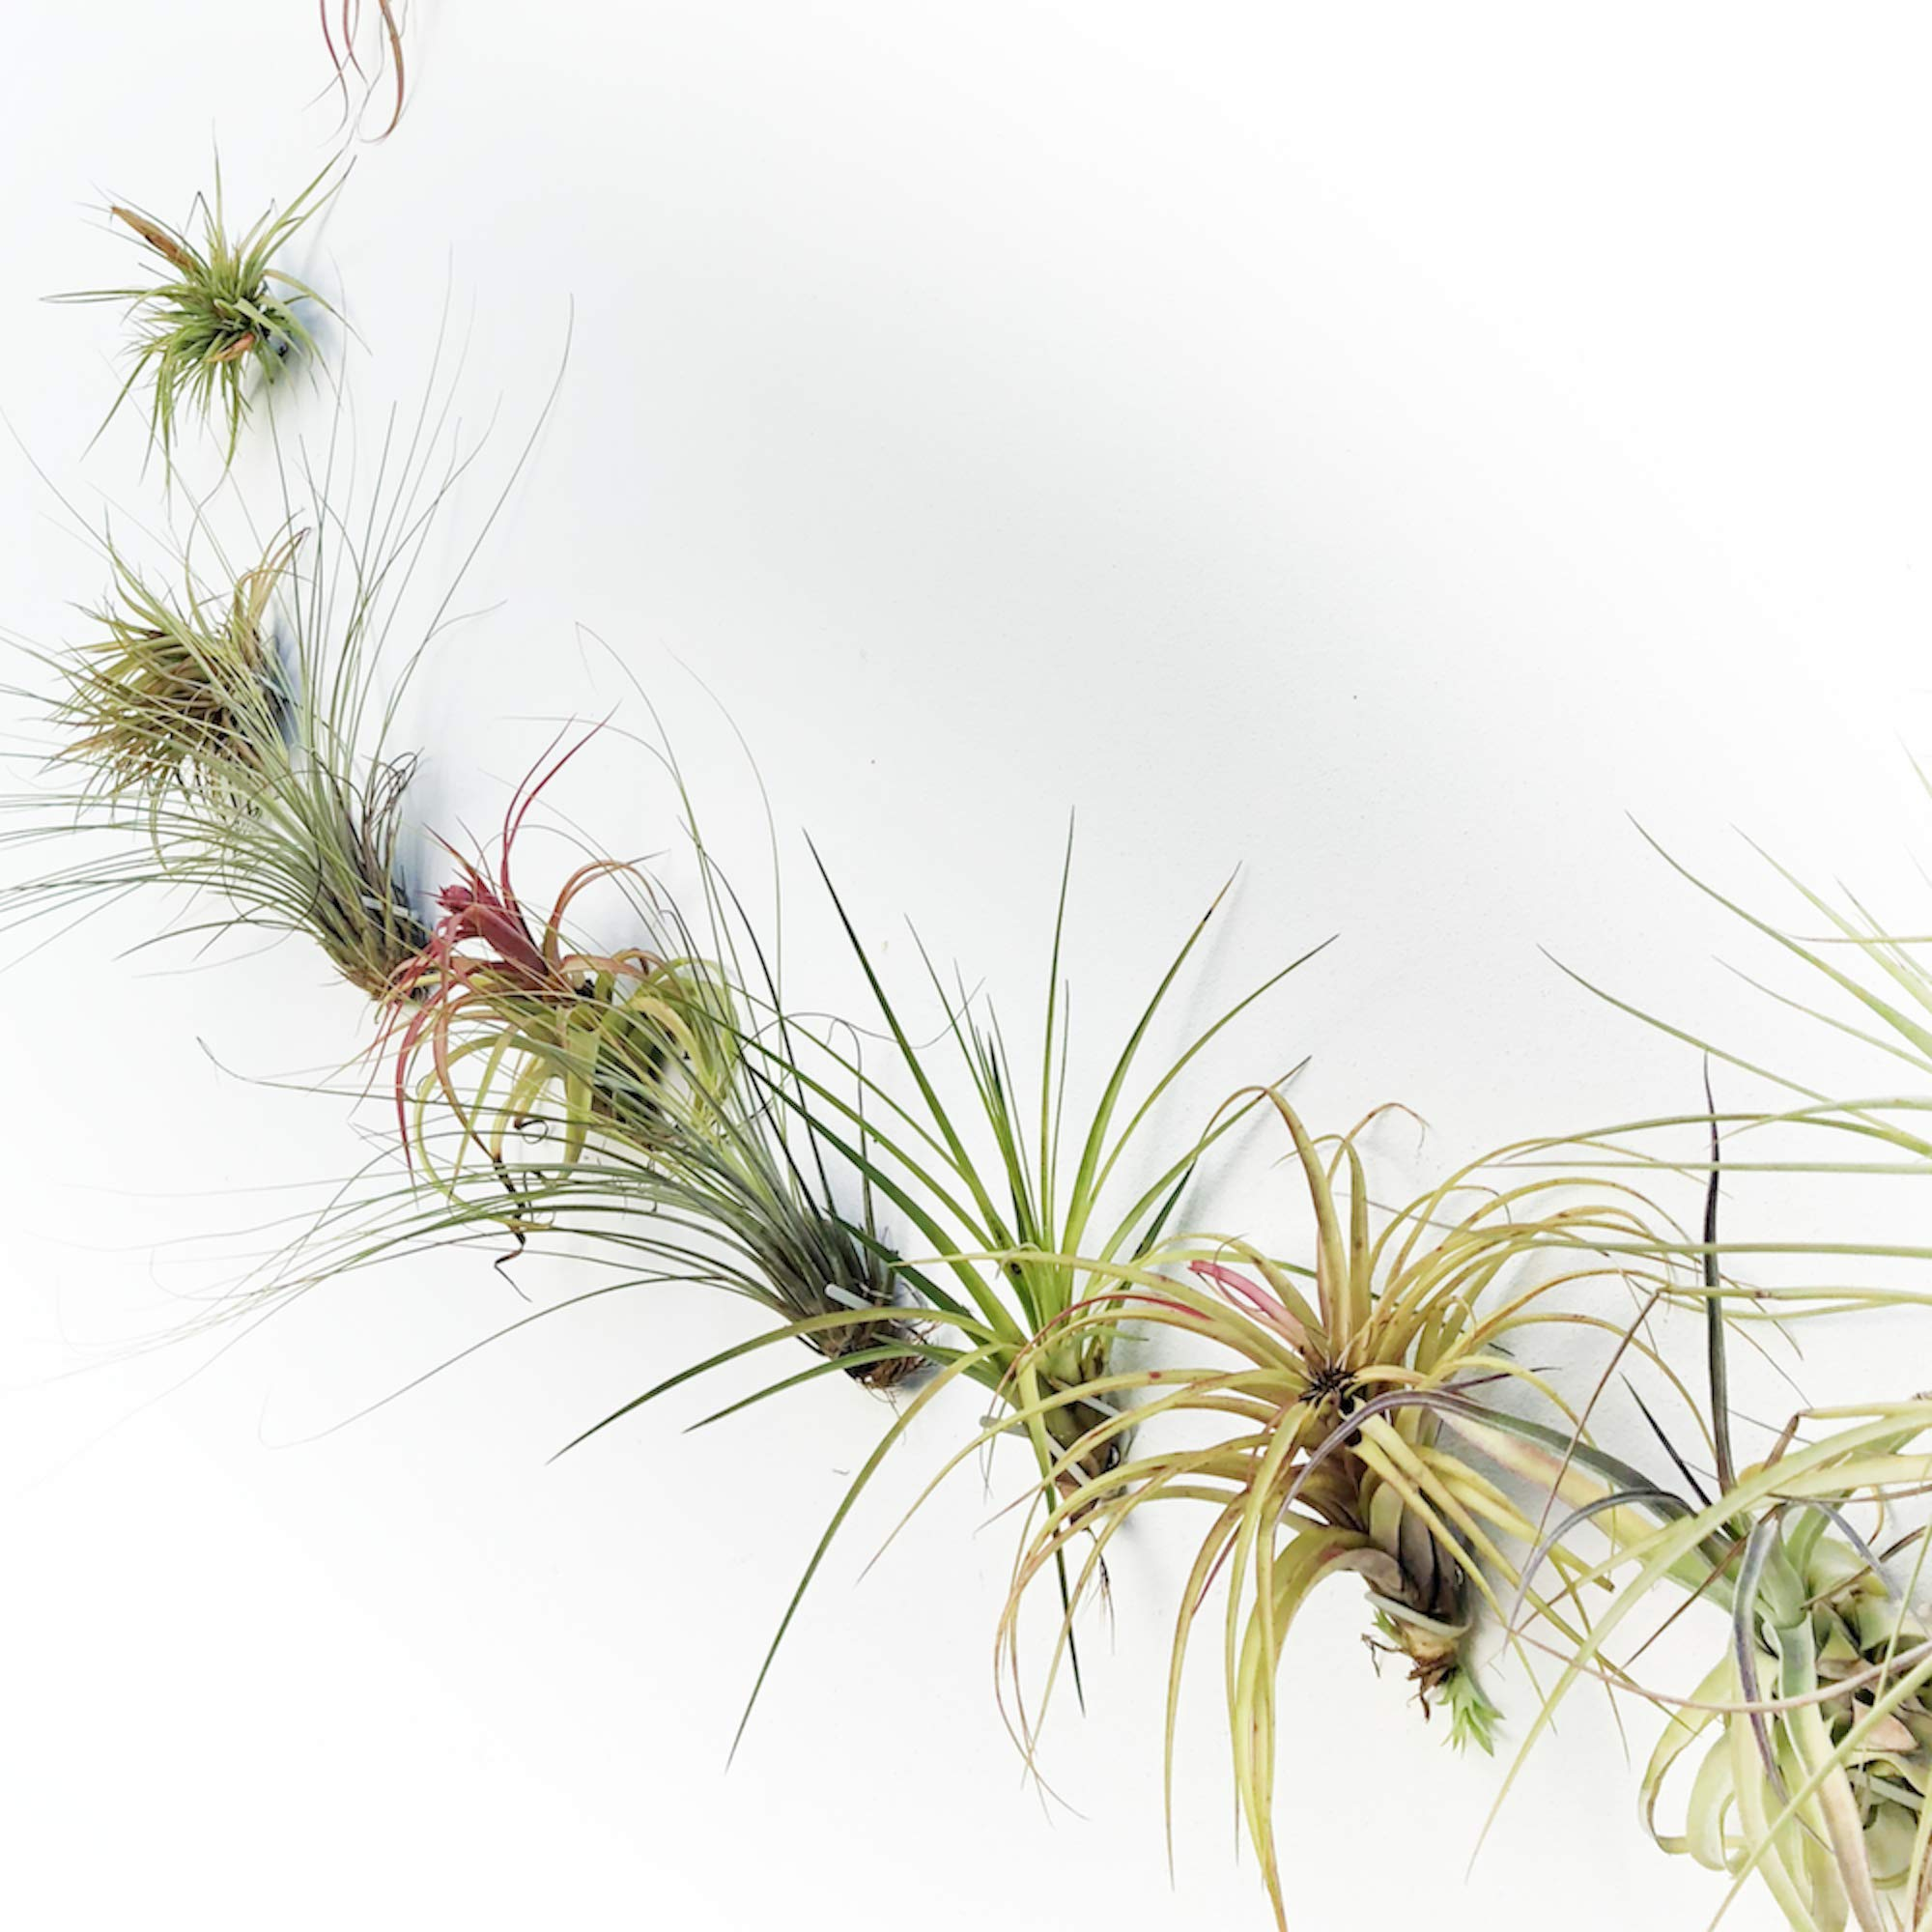 ArtAK Wall Planter Air Plant Holder Wall Hanging AIR KNOTS | 5 Wall Mount Planters for Large Air Plant & Vanda Display | Vertical Garden Modern Hanging Planter | Hanging Air Plants and Holders Grey by ArtAK (Image #5)